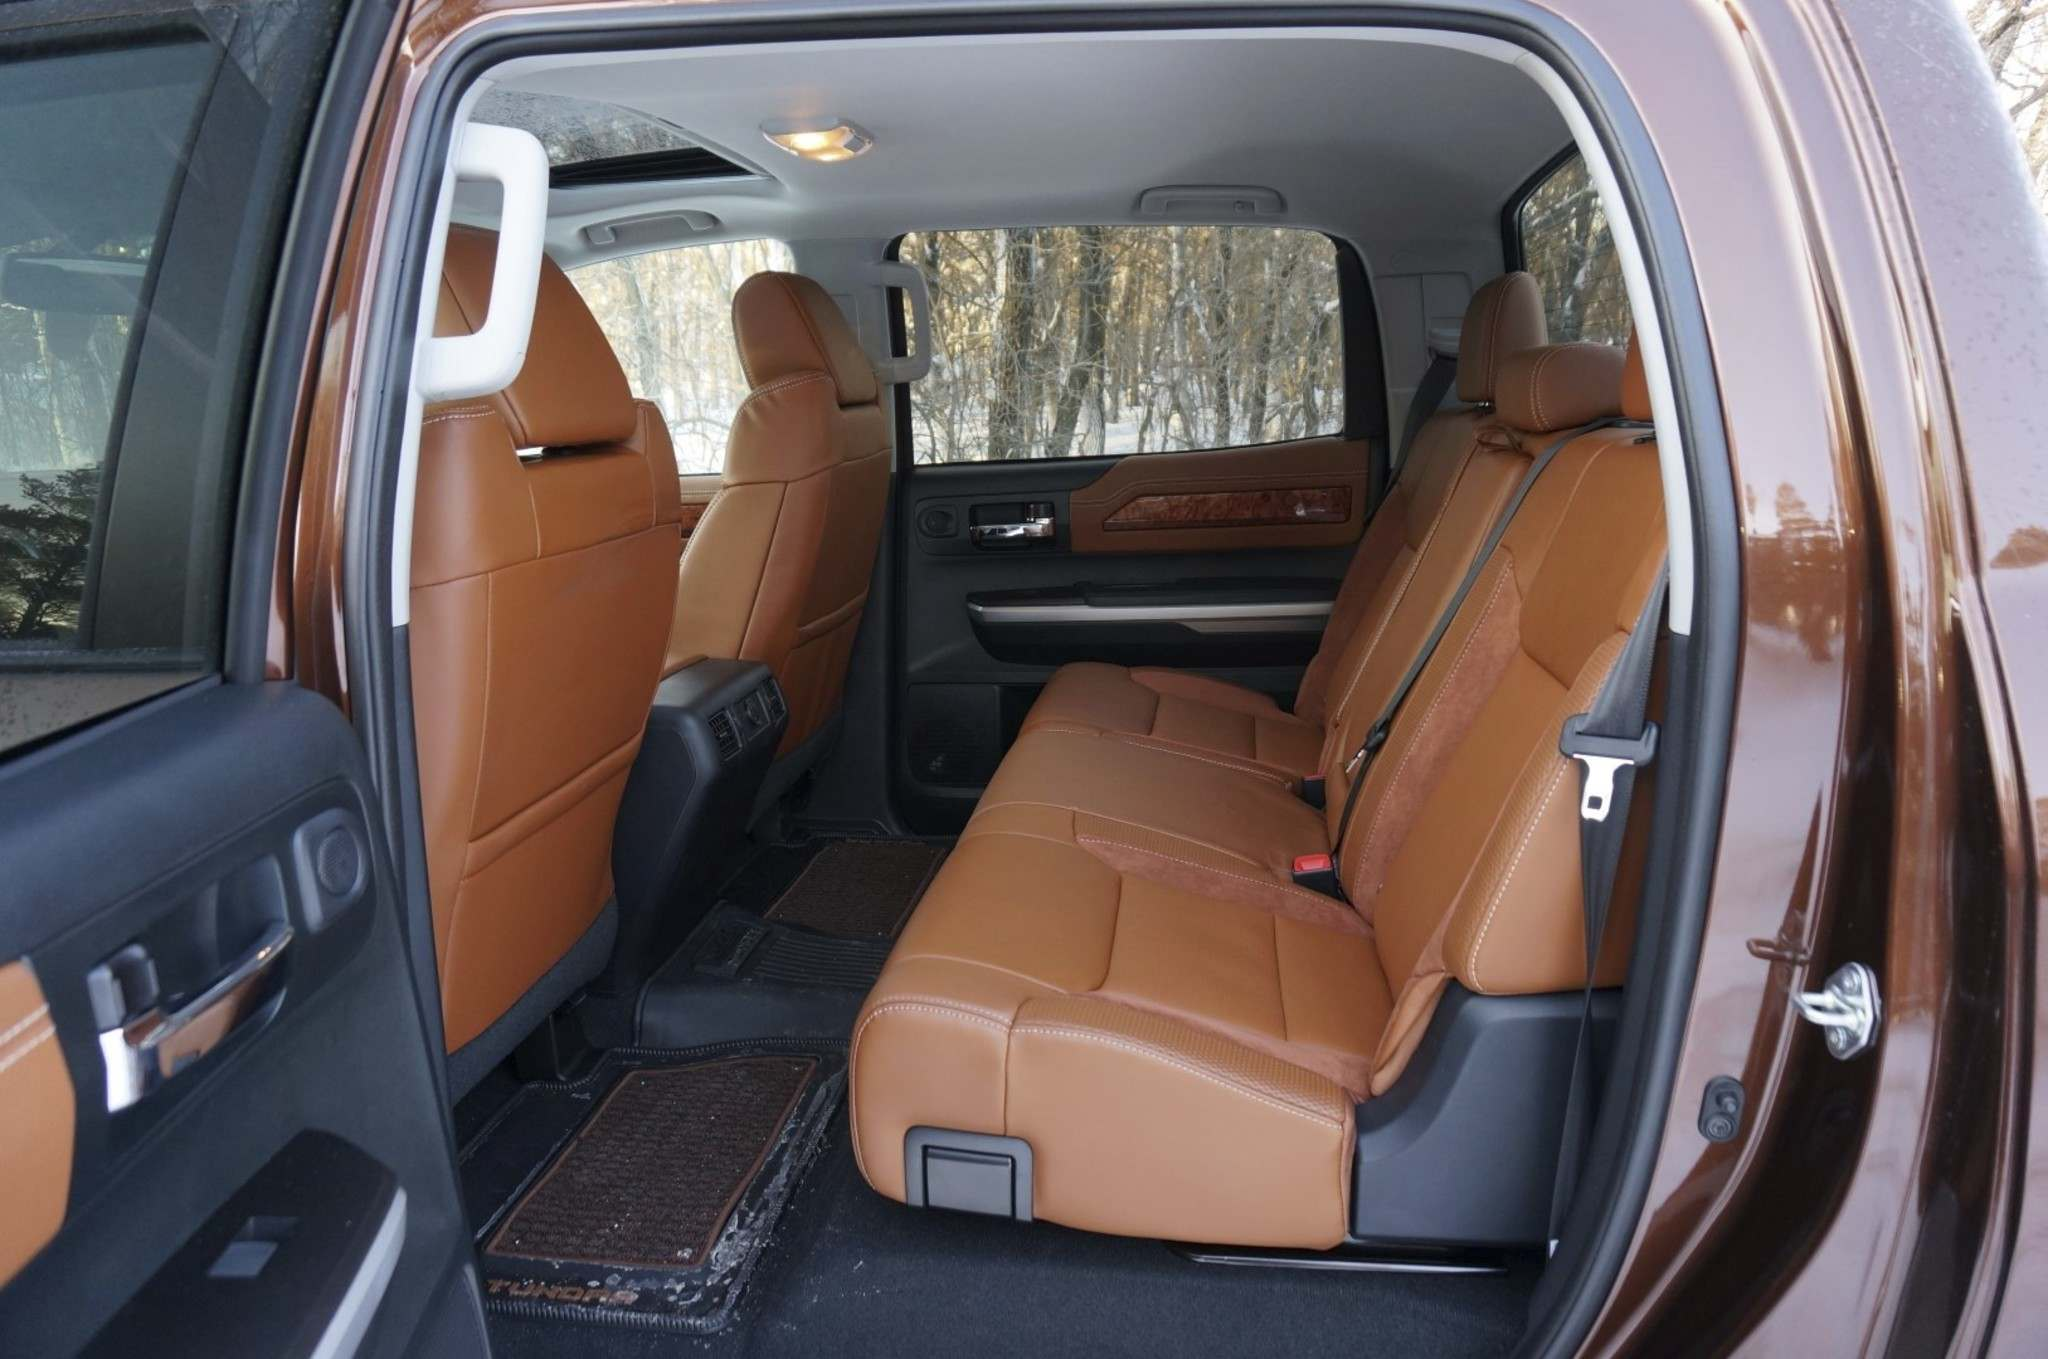 Haney Louka / Winnipeg Free PressThe CrewMax adds nearly 200 millimetres of rear-seat leg room to the DoubleCab: think living room on wheels.